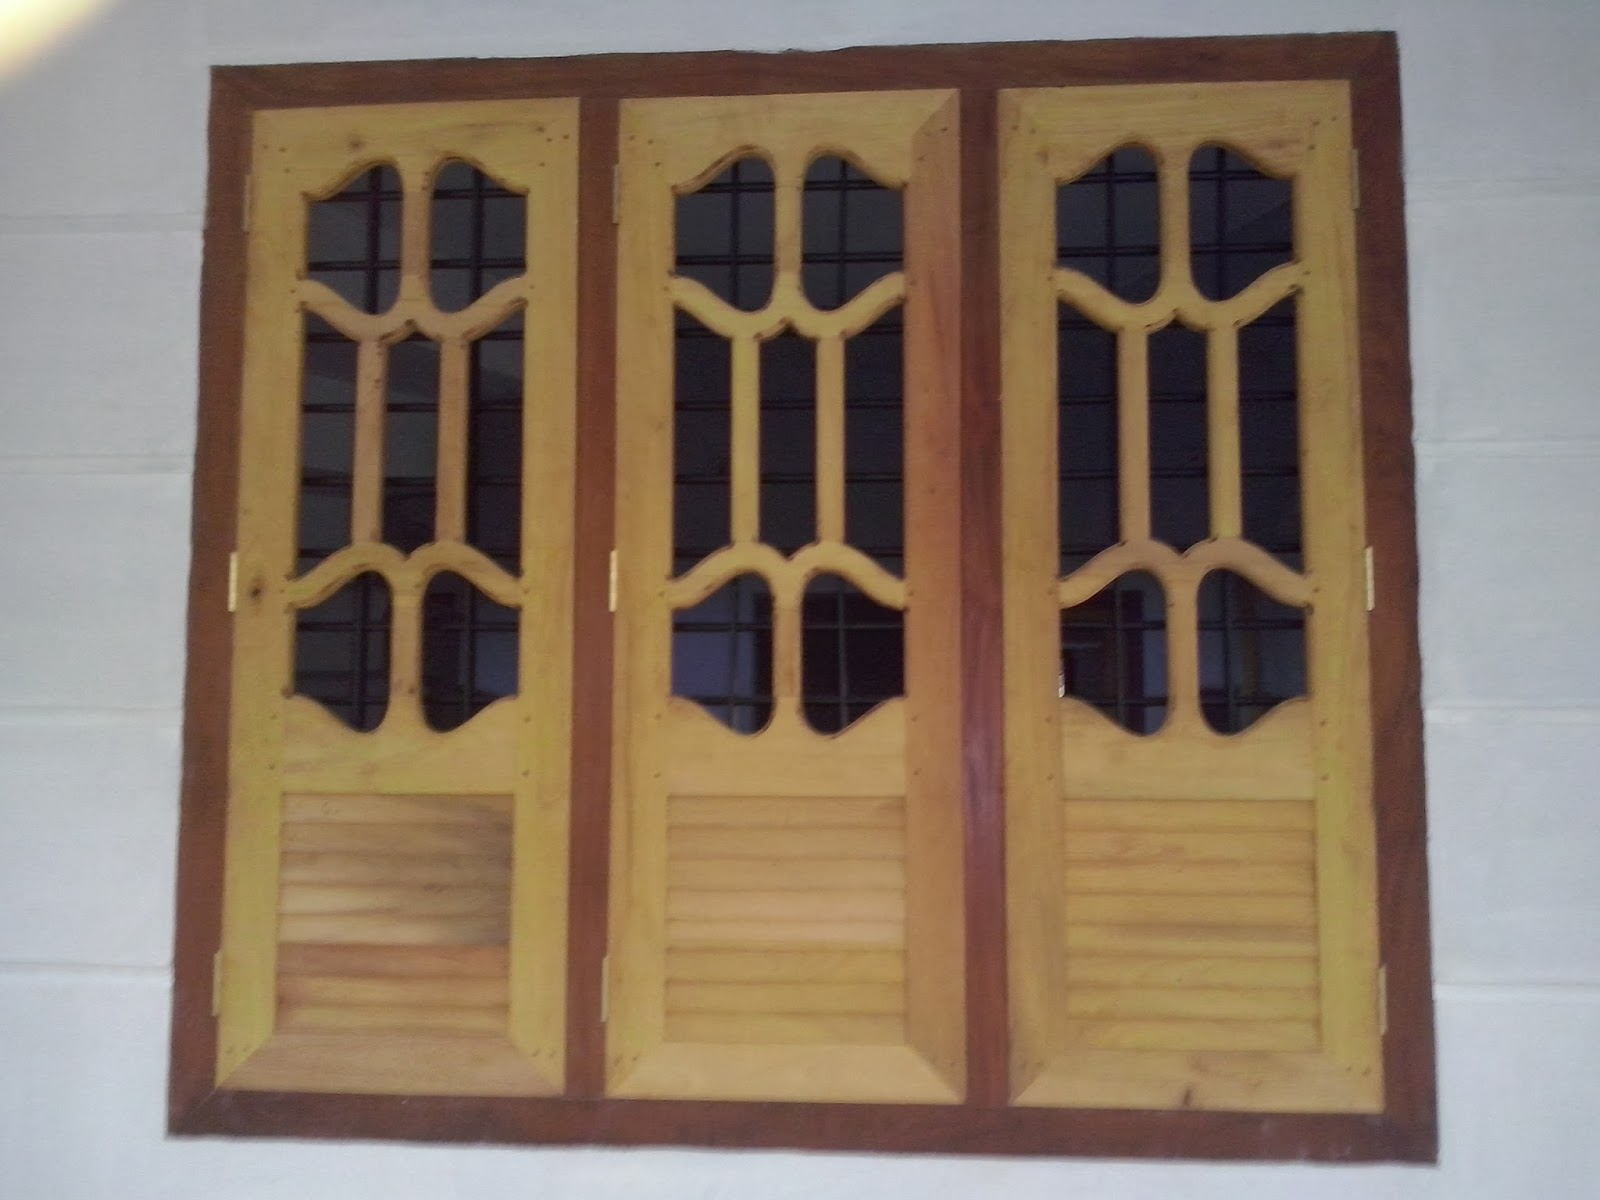 Bavas wood works window door design pictures for Window door design